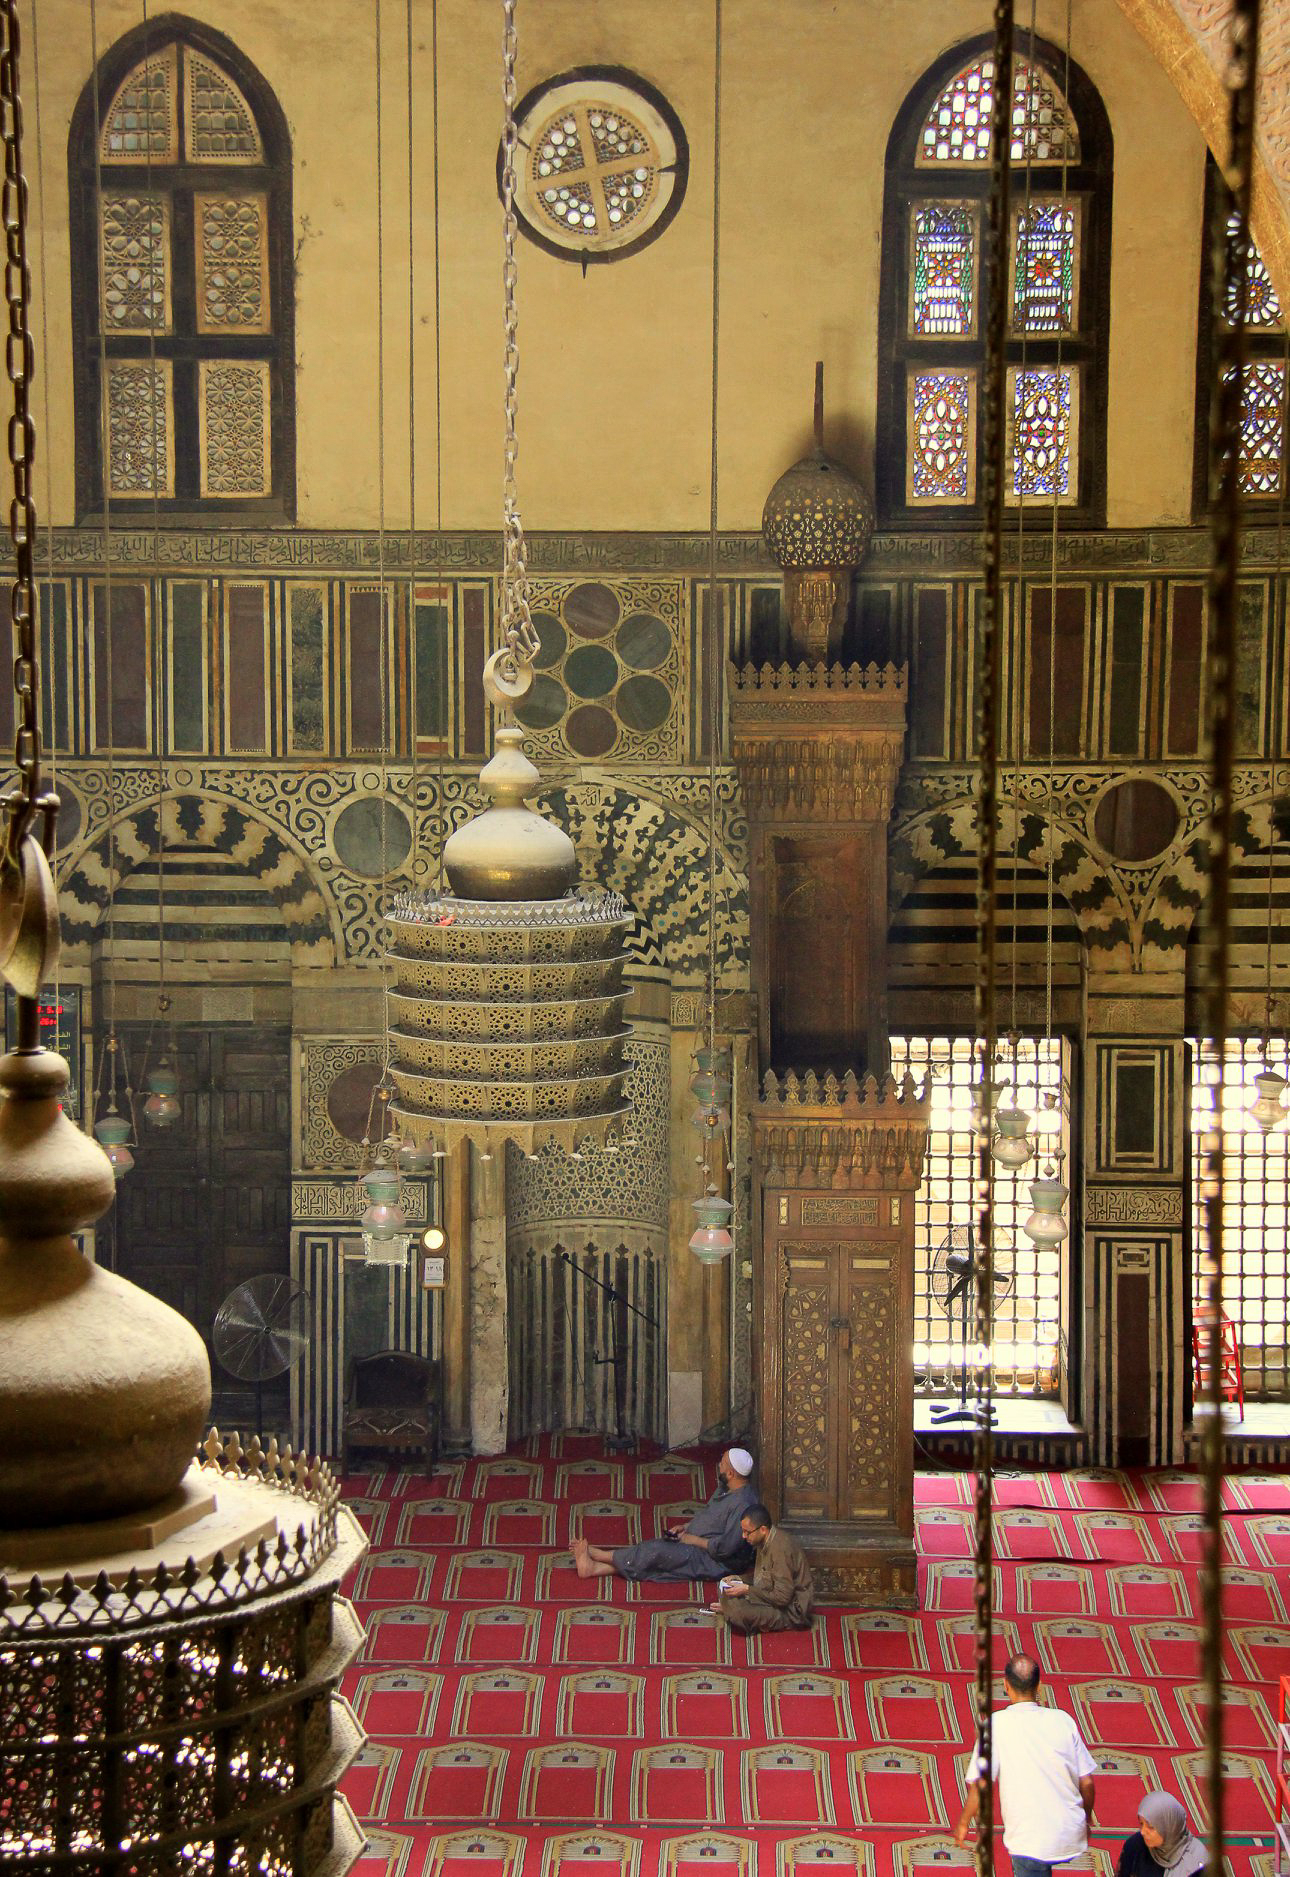 al ghuriya mosque interior